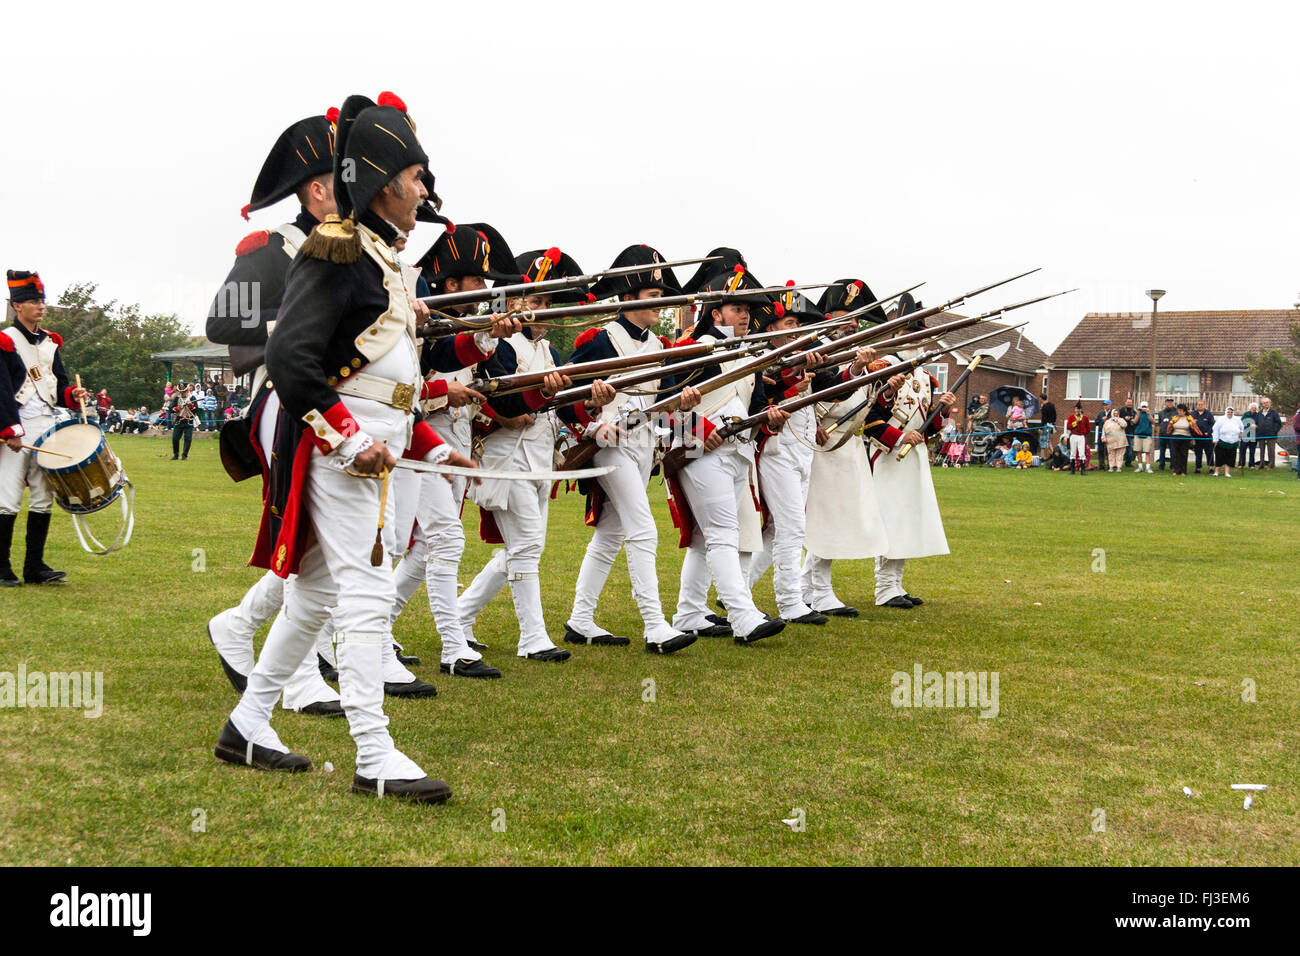 Napoleonic war re-enactment. French Imperial Guards with office in foreground, advancing in line, at the ready with - Stock Image